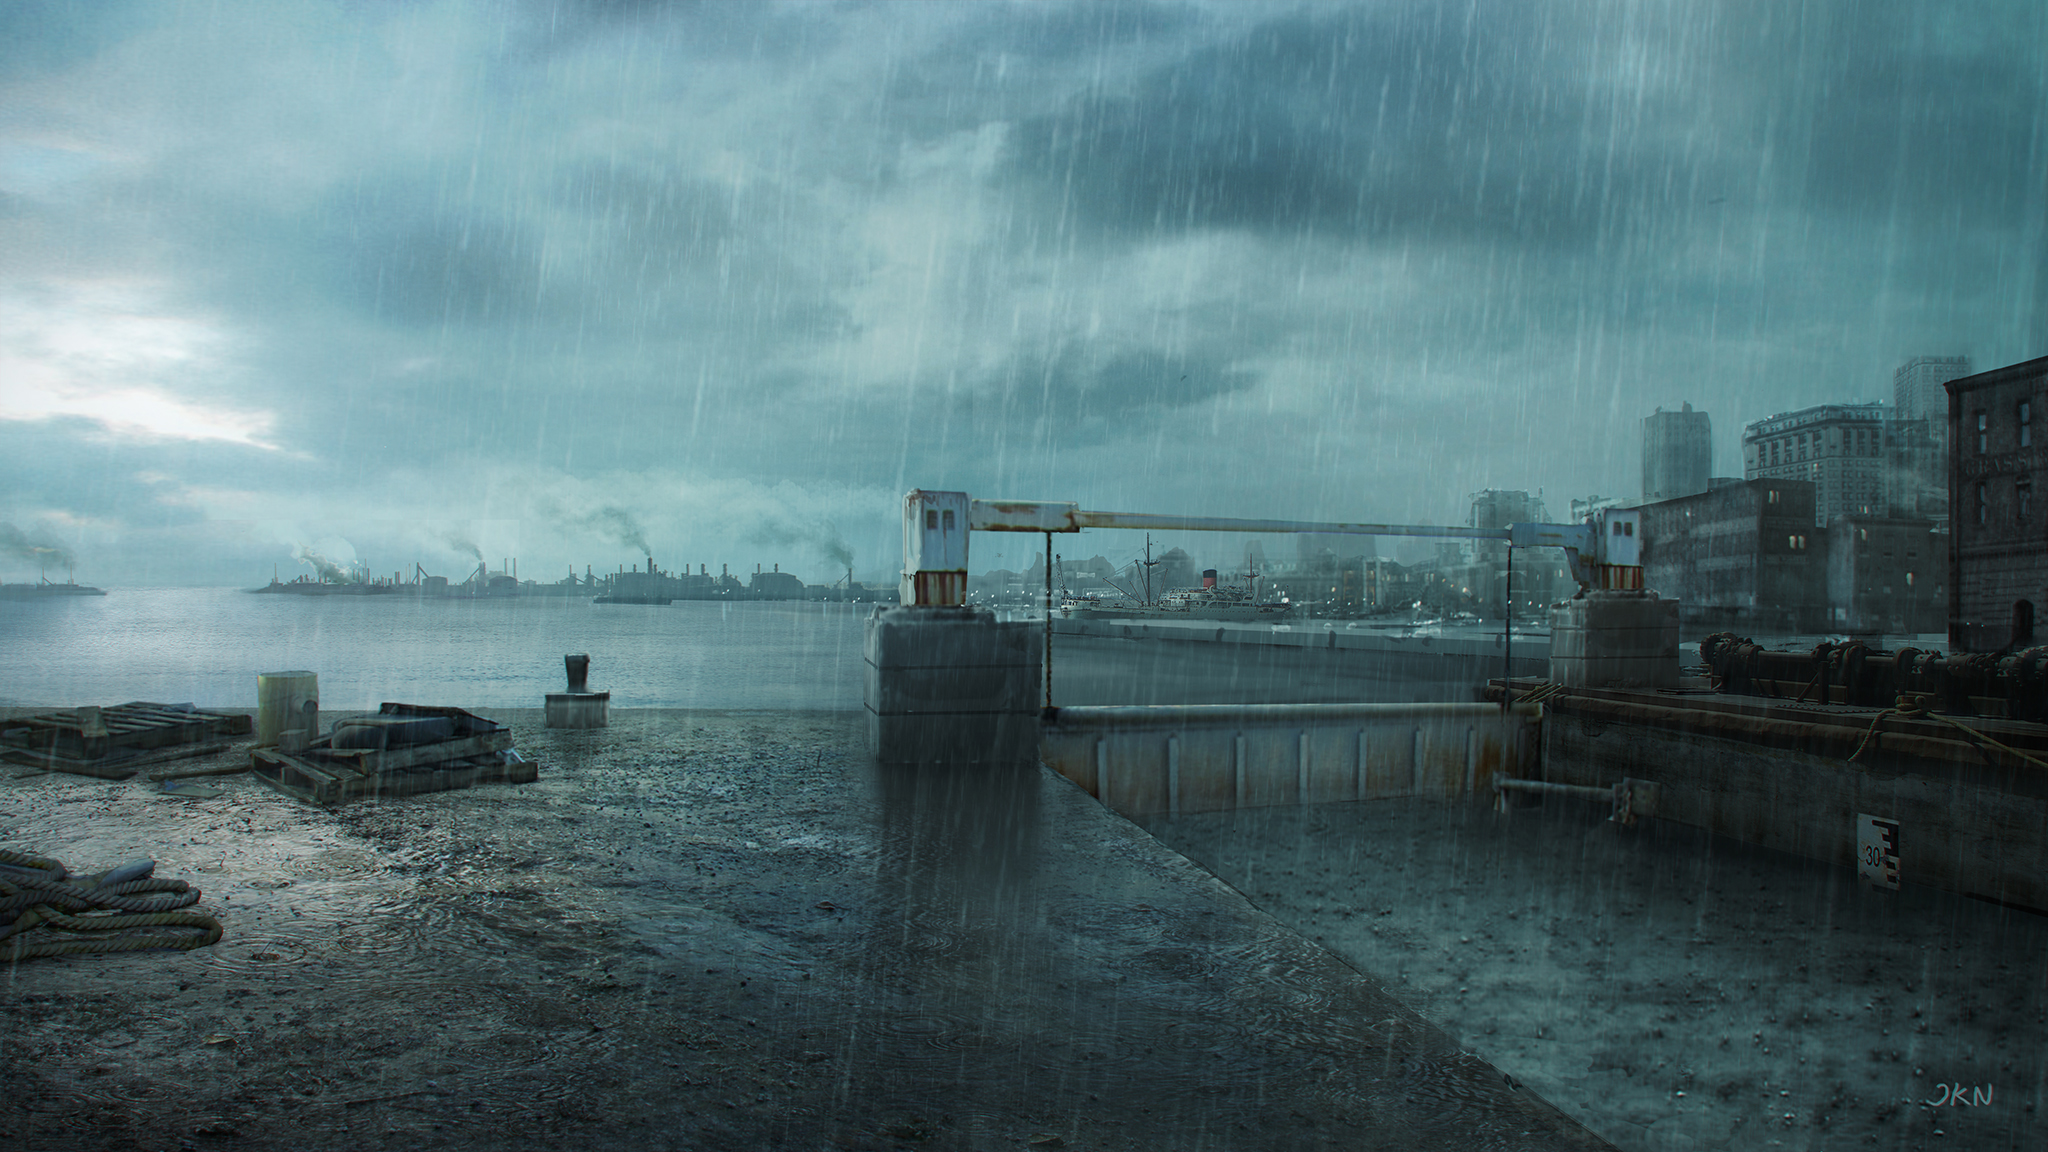 CANAL_Lookingout_concept_v002.jpg